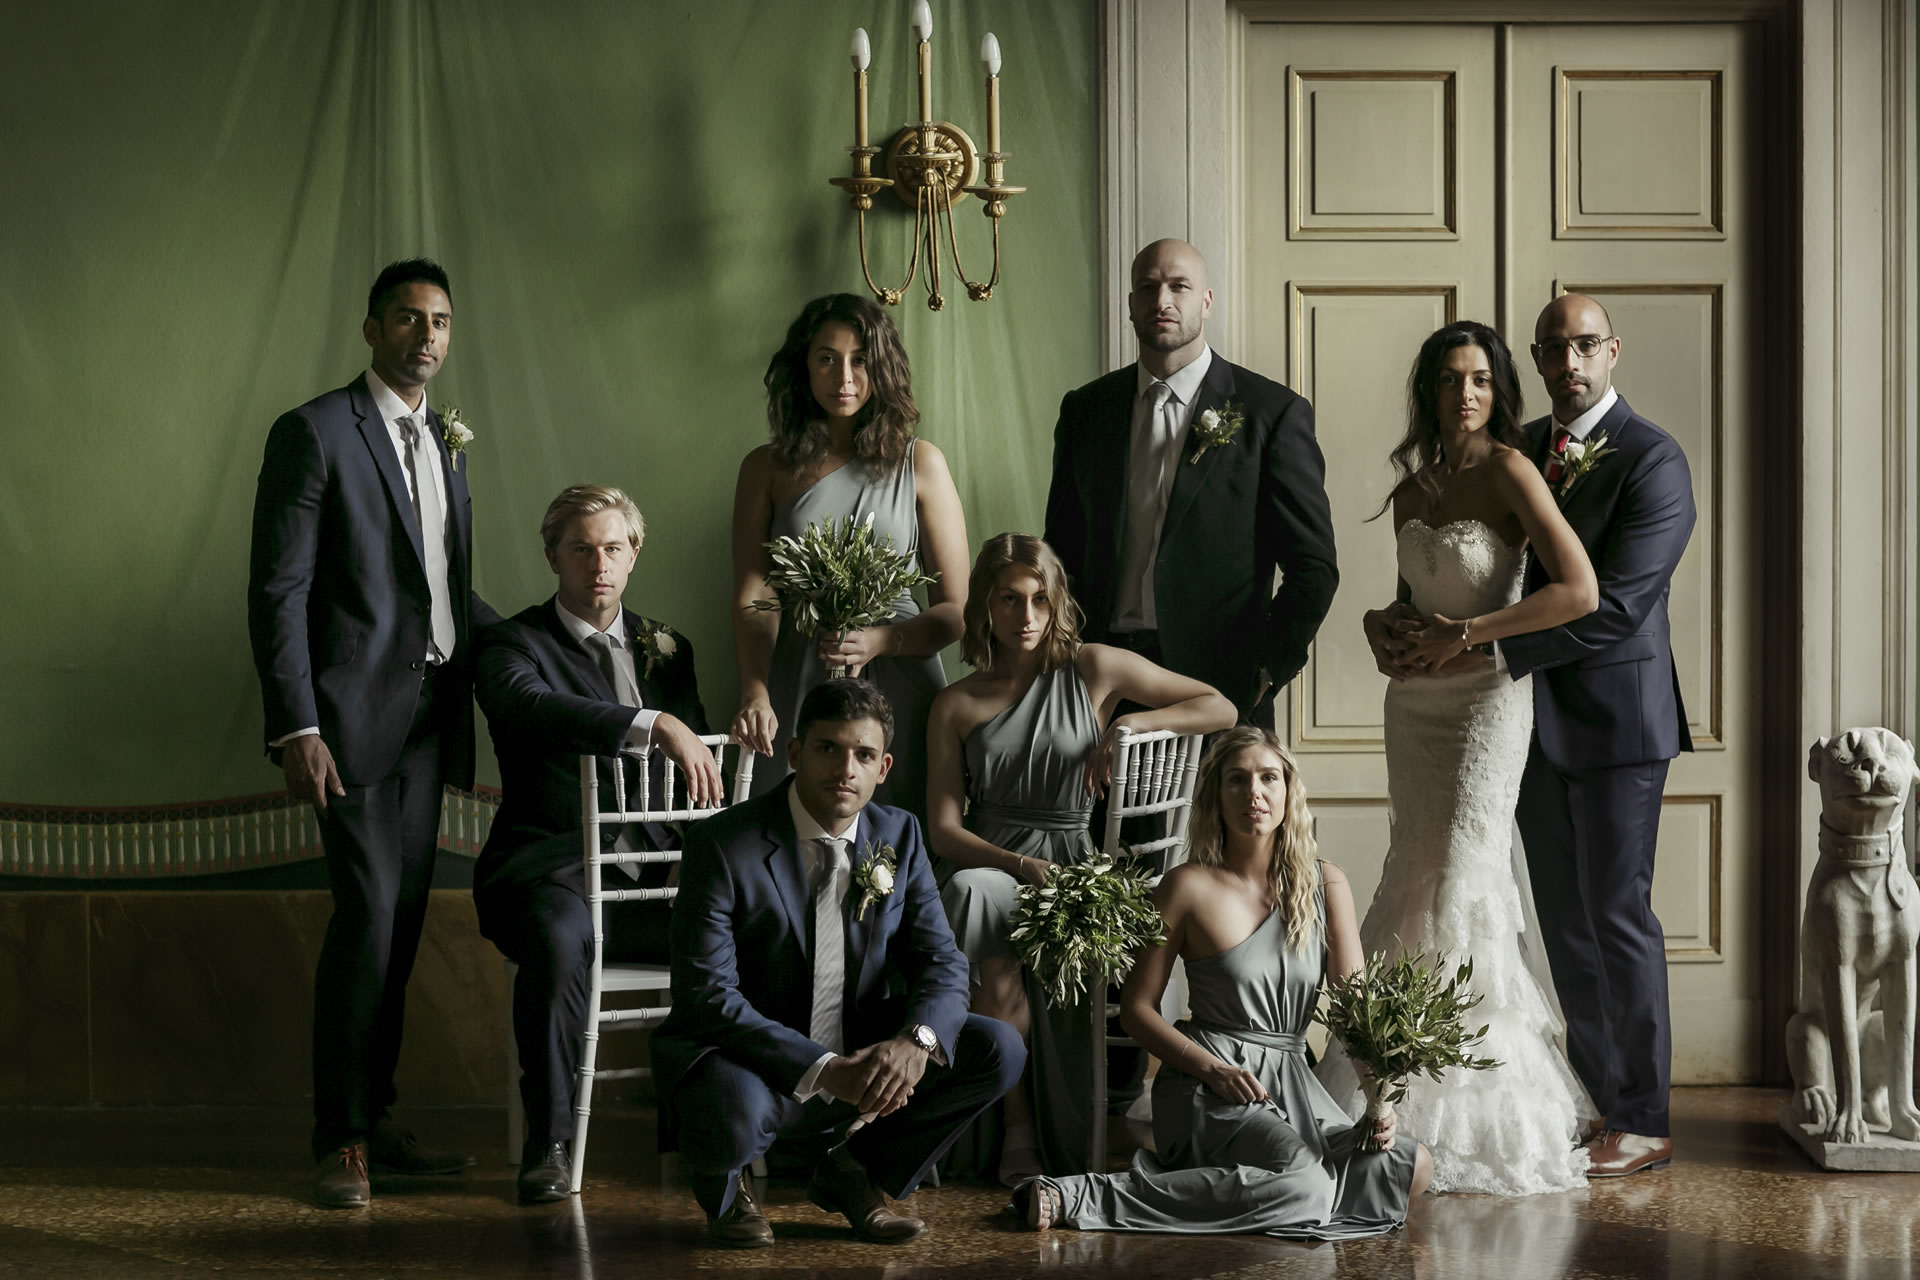 - 14 :: Group's portrait: what remains of that day :: Luxury wedding photography - 13 ::  - 14